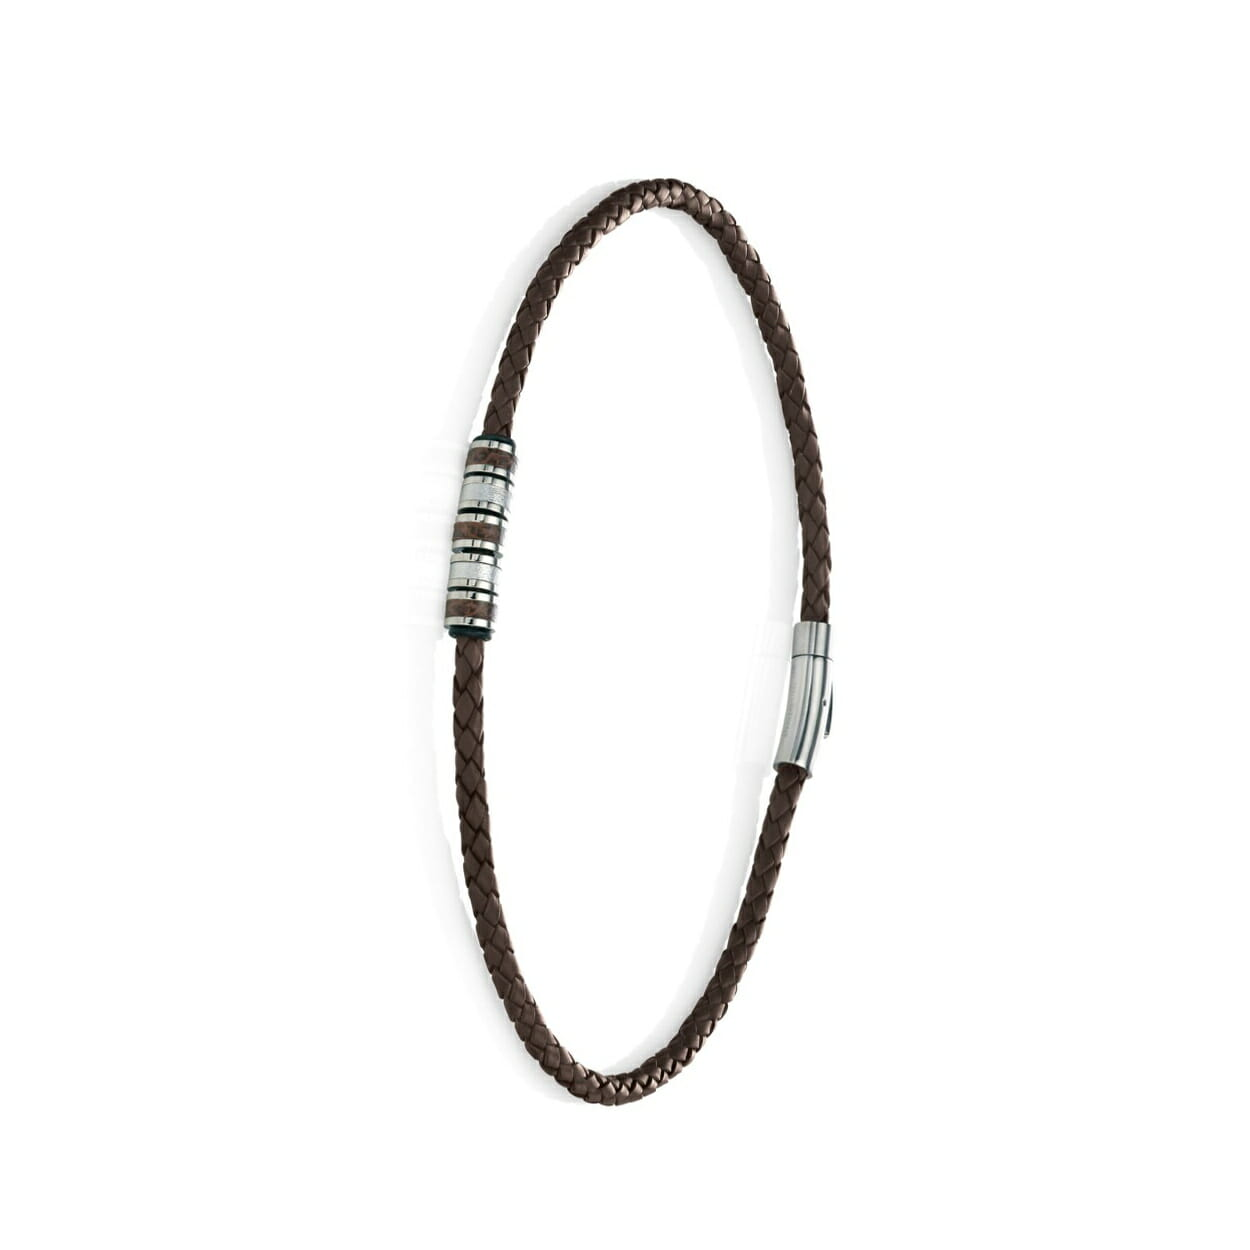 4ecbe49fd59a6 Fred Bennett Men's Brown Leather Necklace with Bead Detail